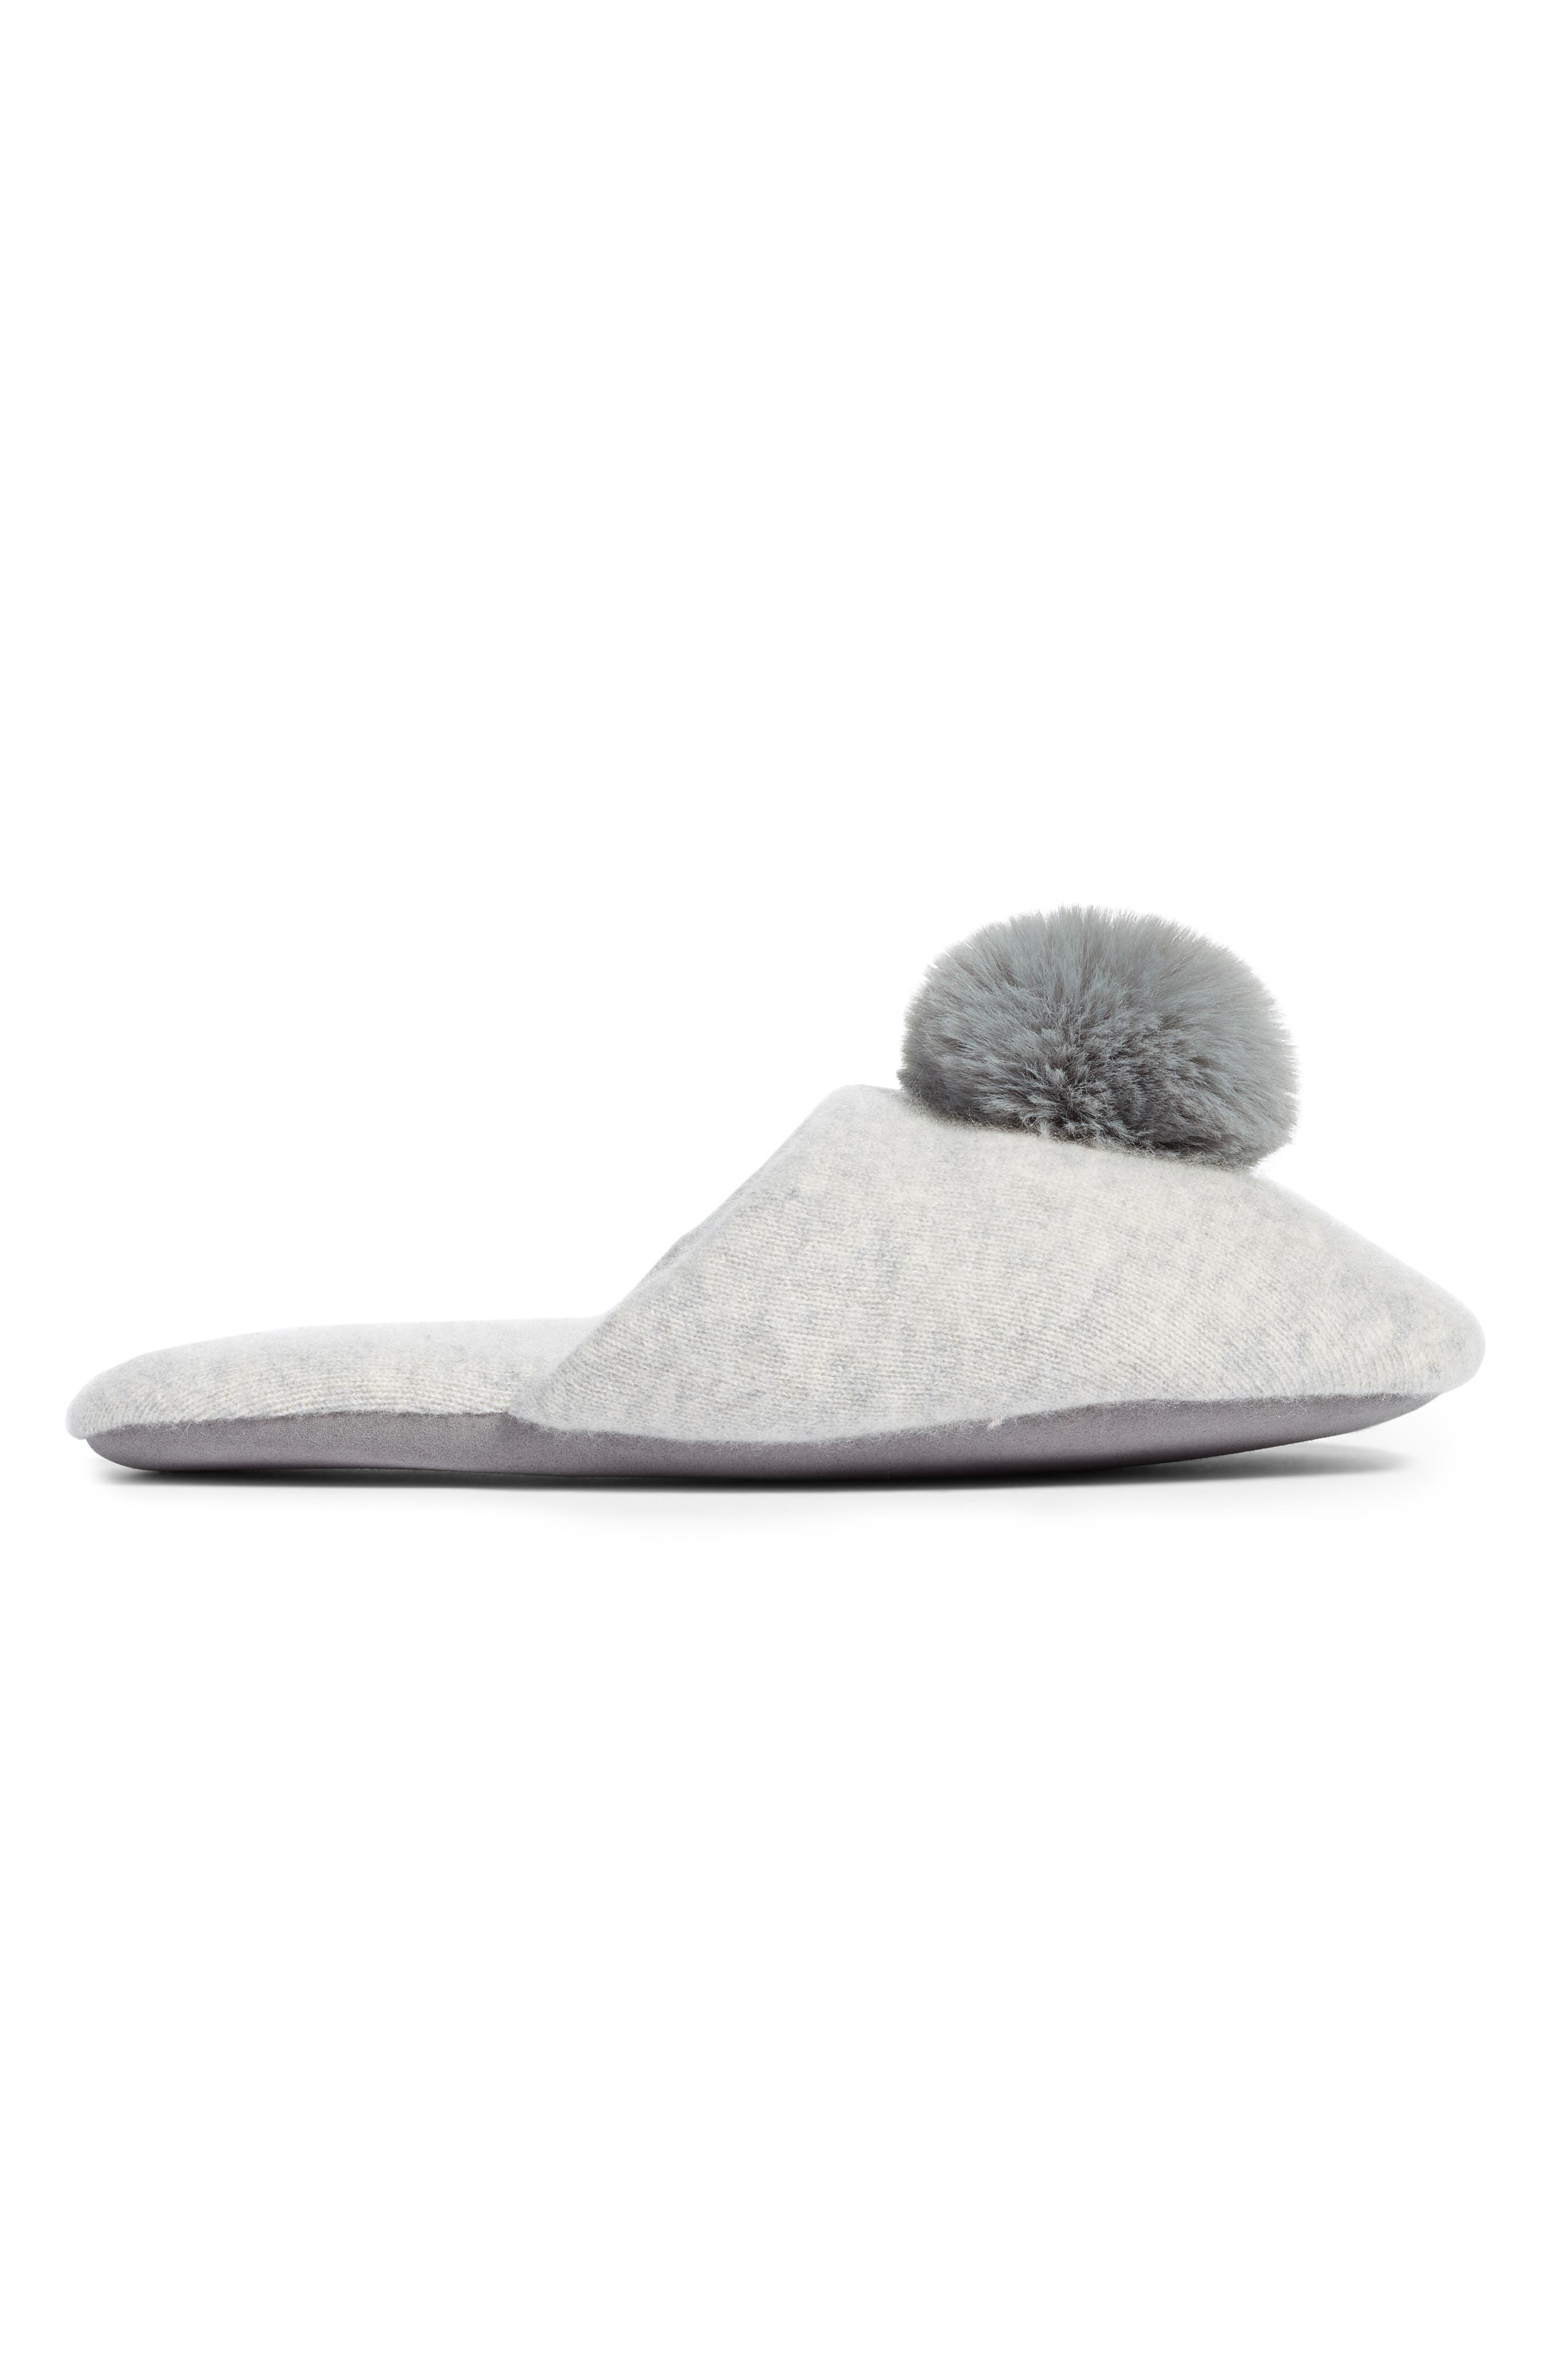 NORDSTROM,                             Wool & Cashmere Slippers with Faux Fur Pompom,                             Alternate thumbnail 3, color,                             GREY HEATHER